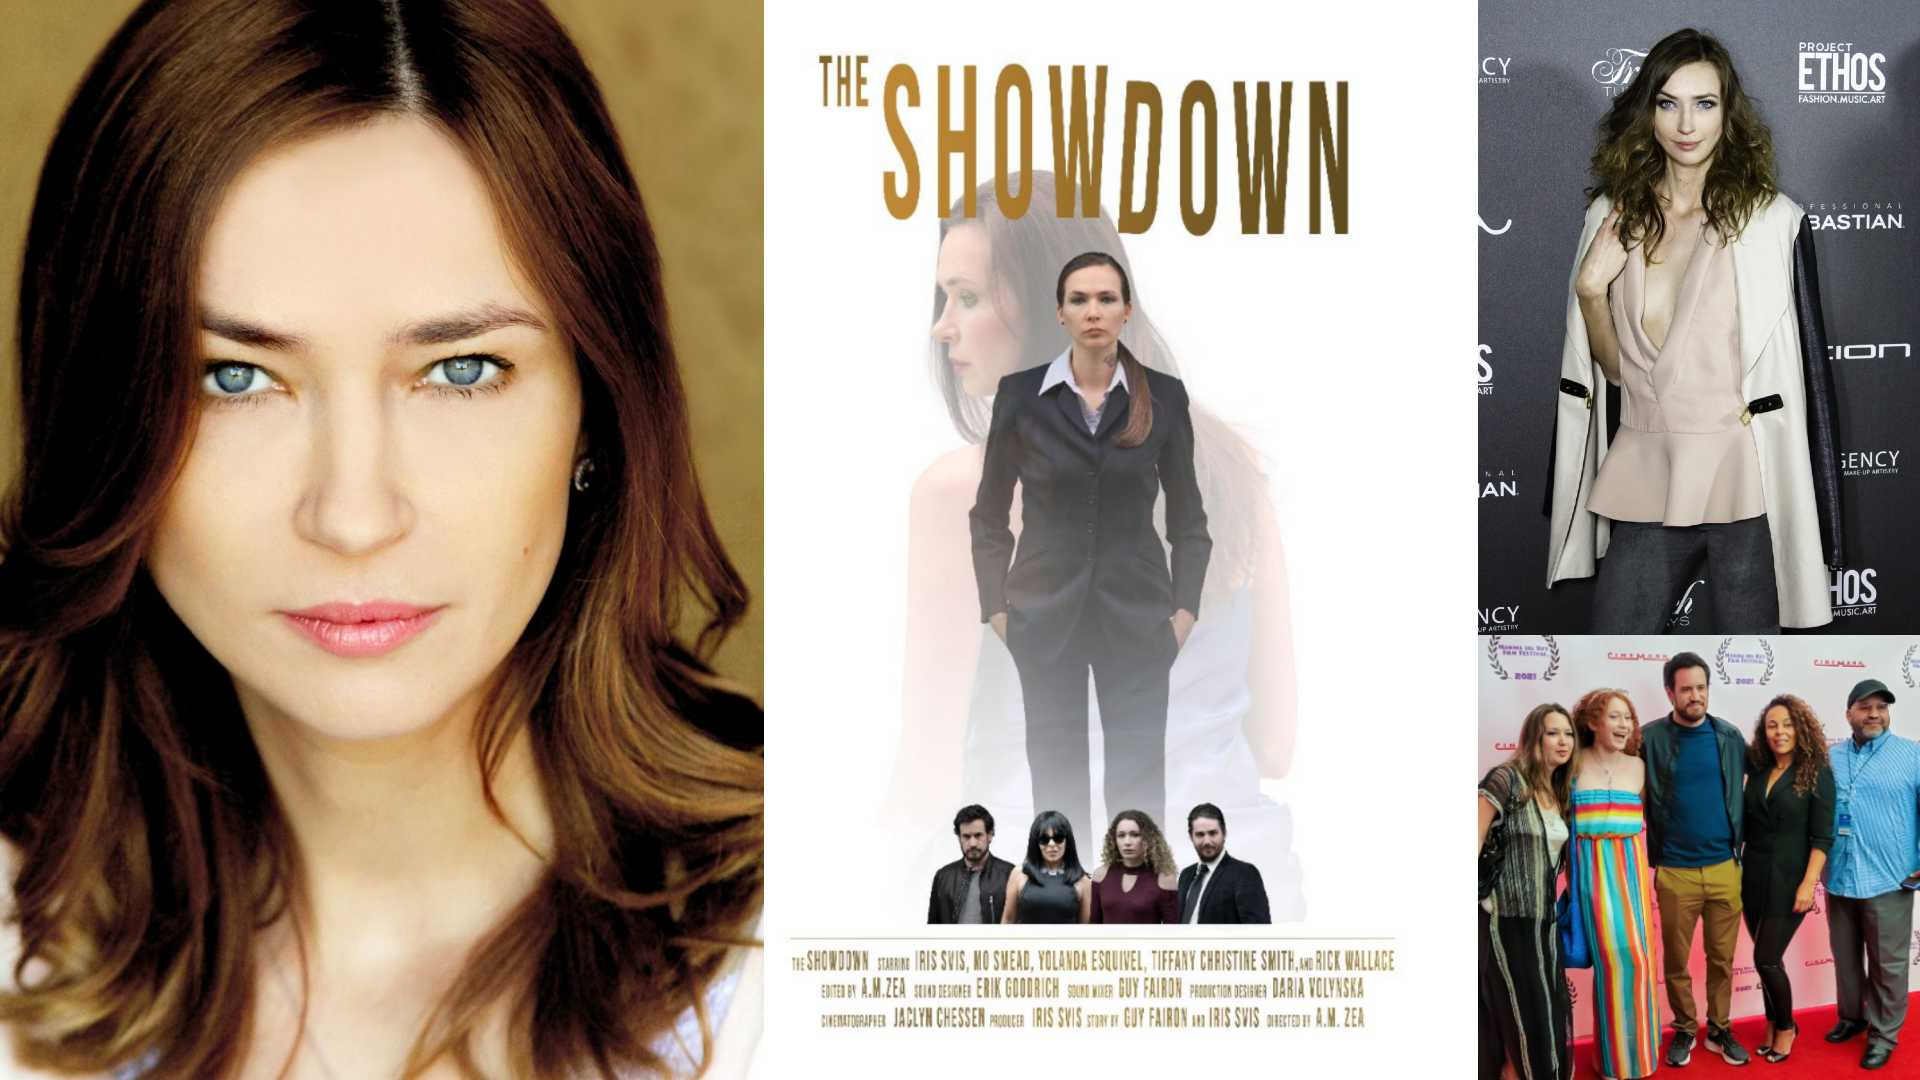 ACTRESS IRIS SVIS CONFIRMS 'THE SHOWDOWN' SCREENING AT THE LEGENDARY CHINESE THEATER & BEST ACTRESS NOMINATION!